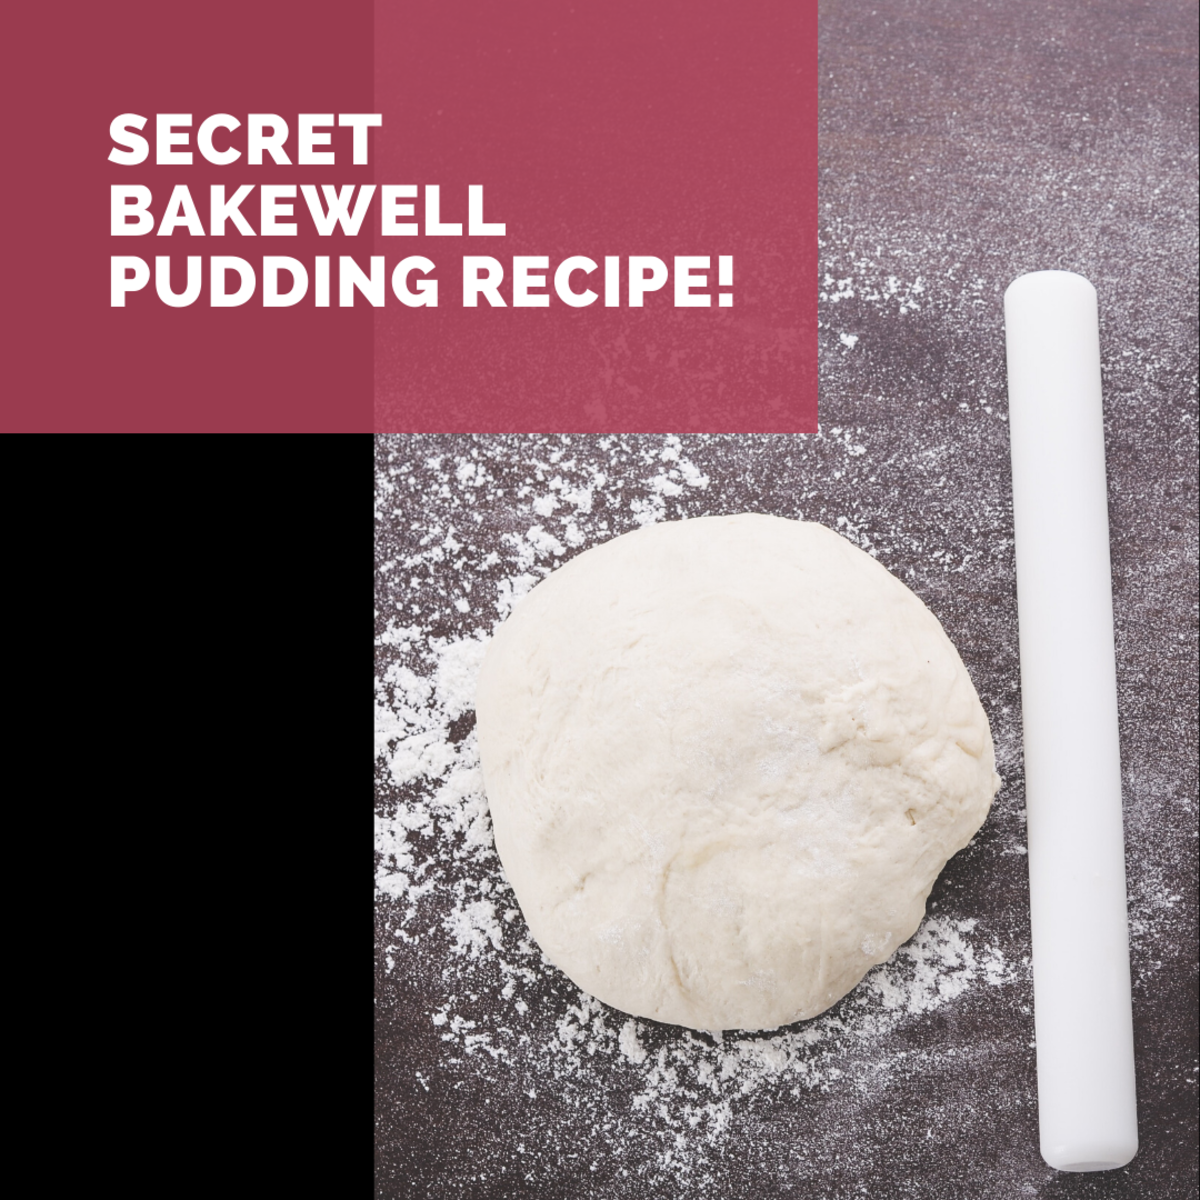 This delicious recipe is easy to make!